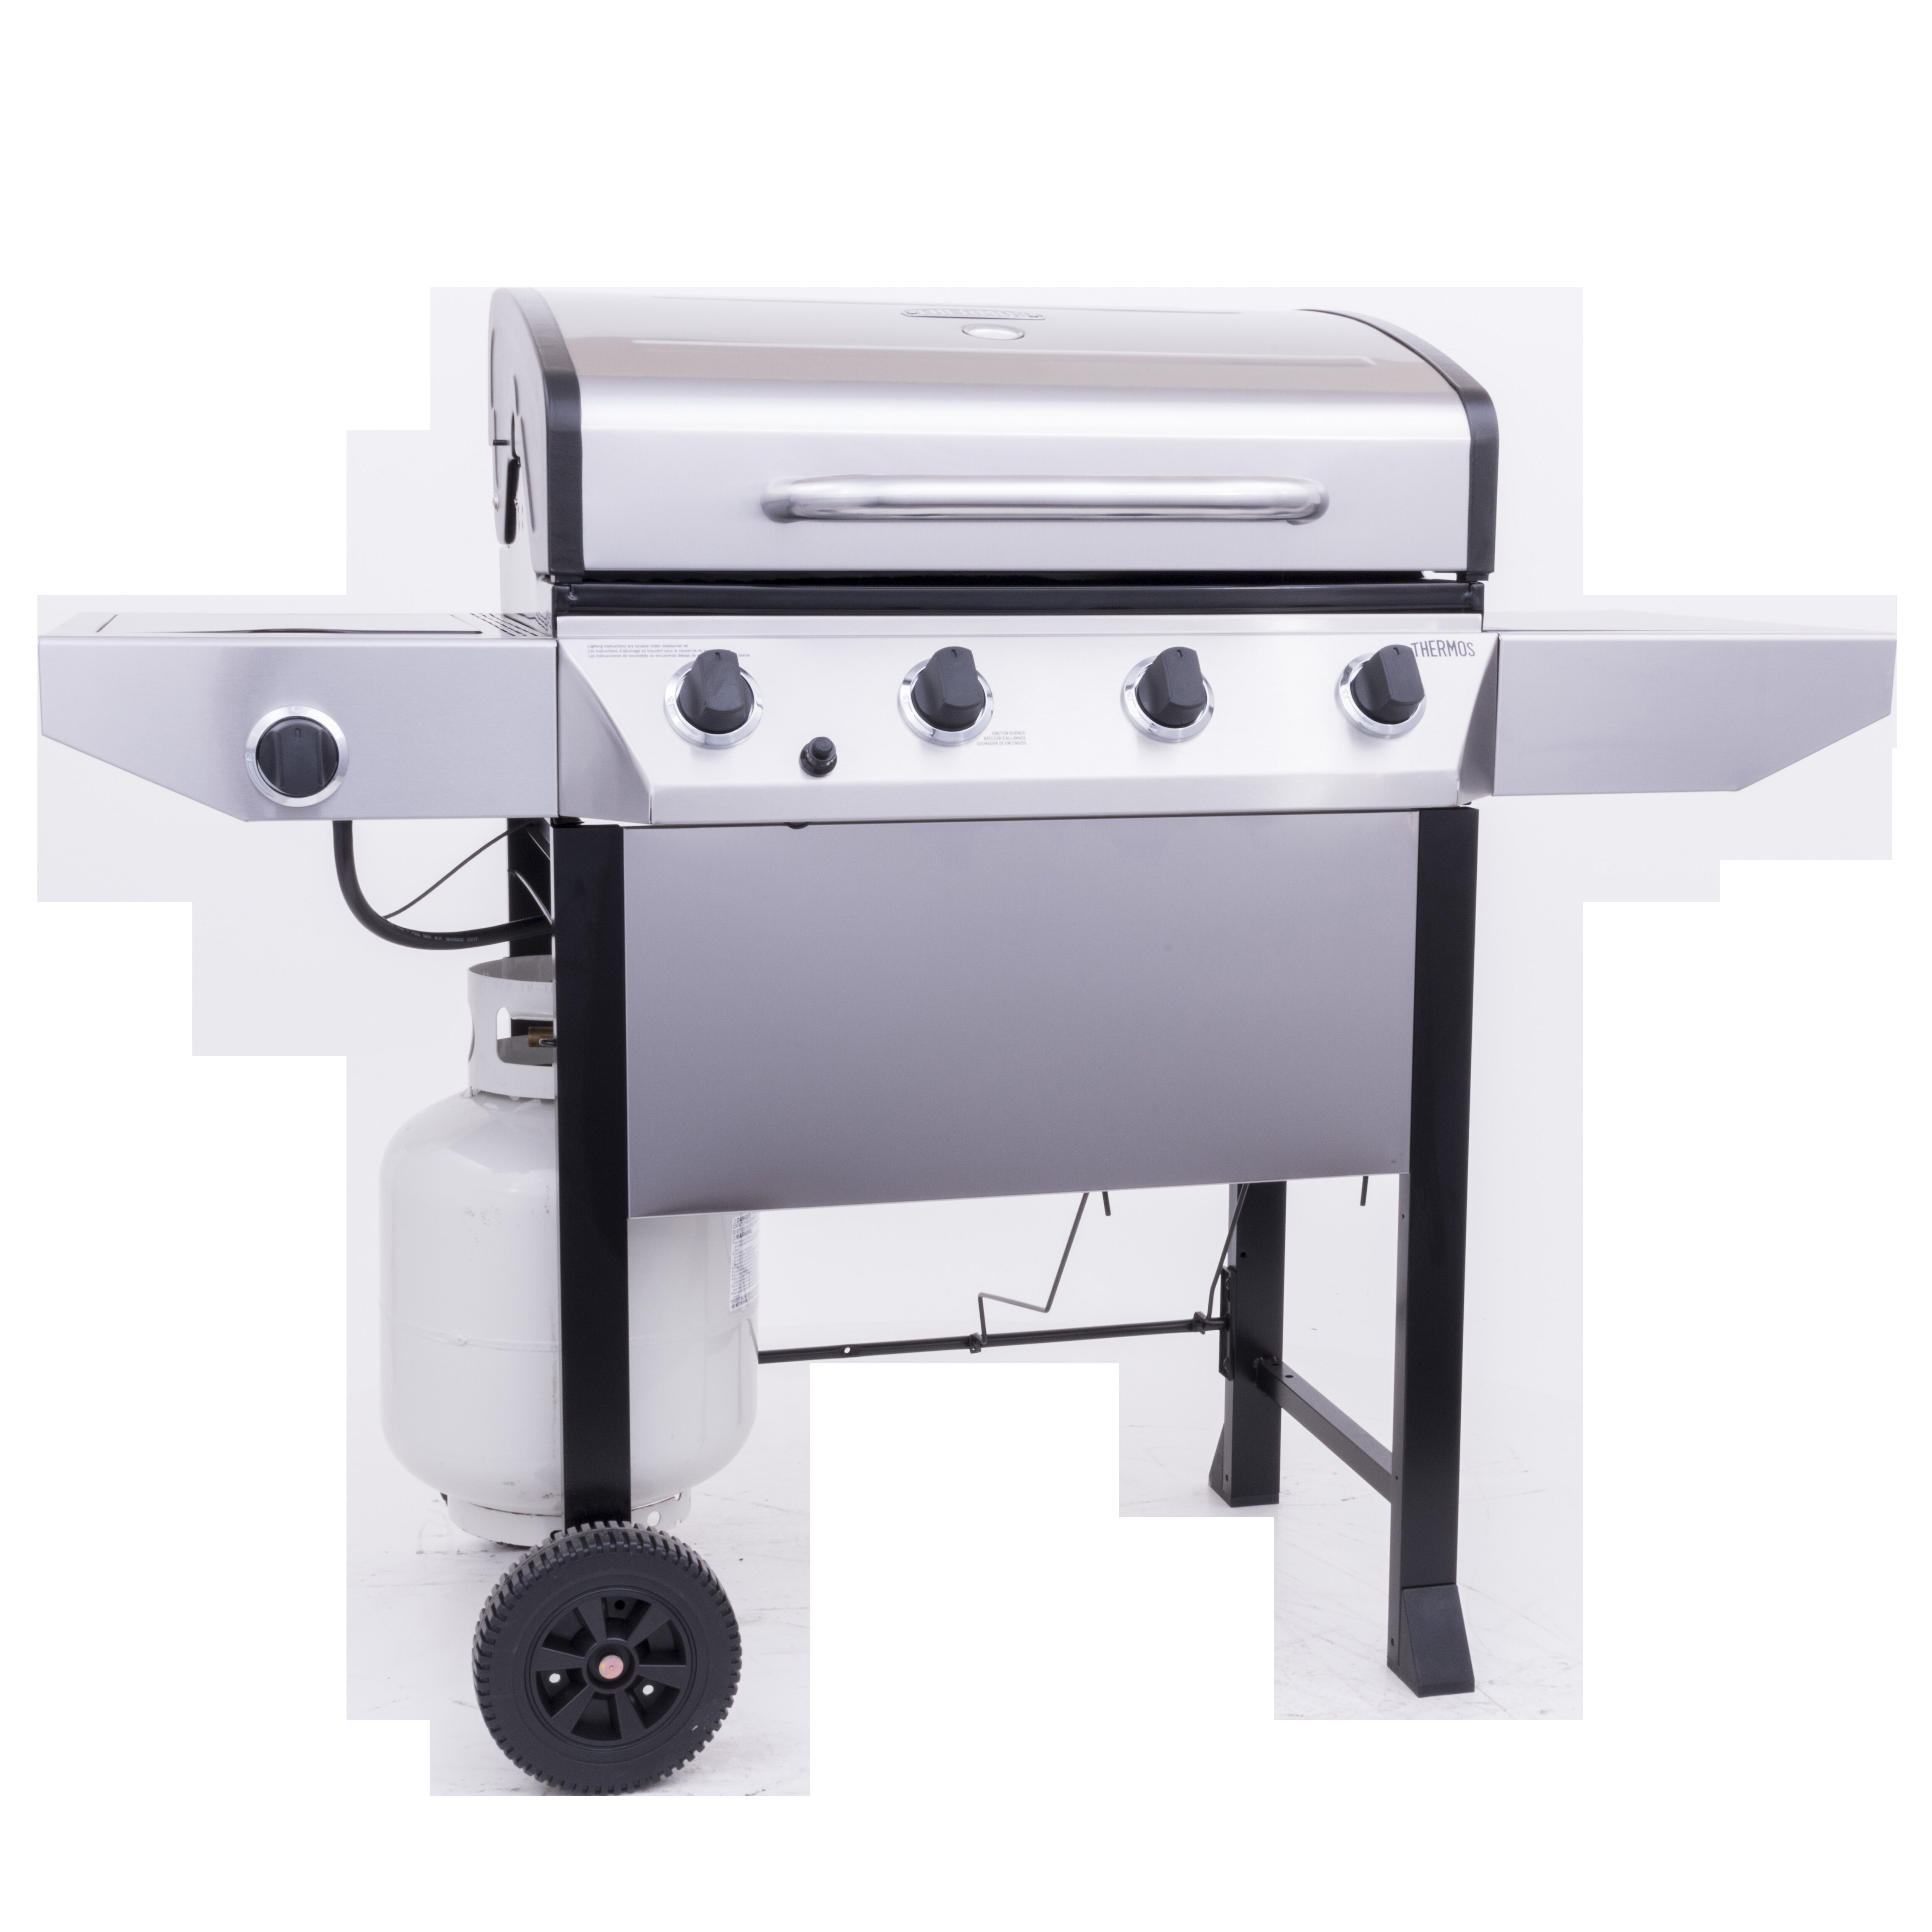 Thermos 4-Burner Propane Gas Grill & Reviews | Wayfair